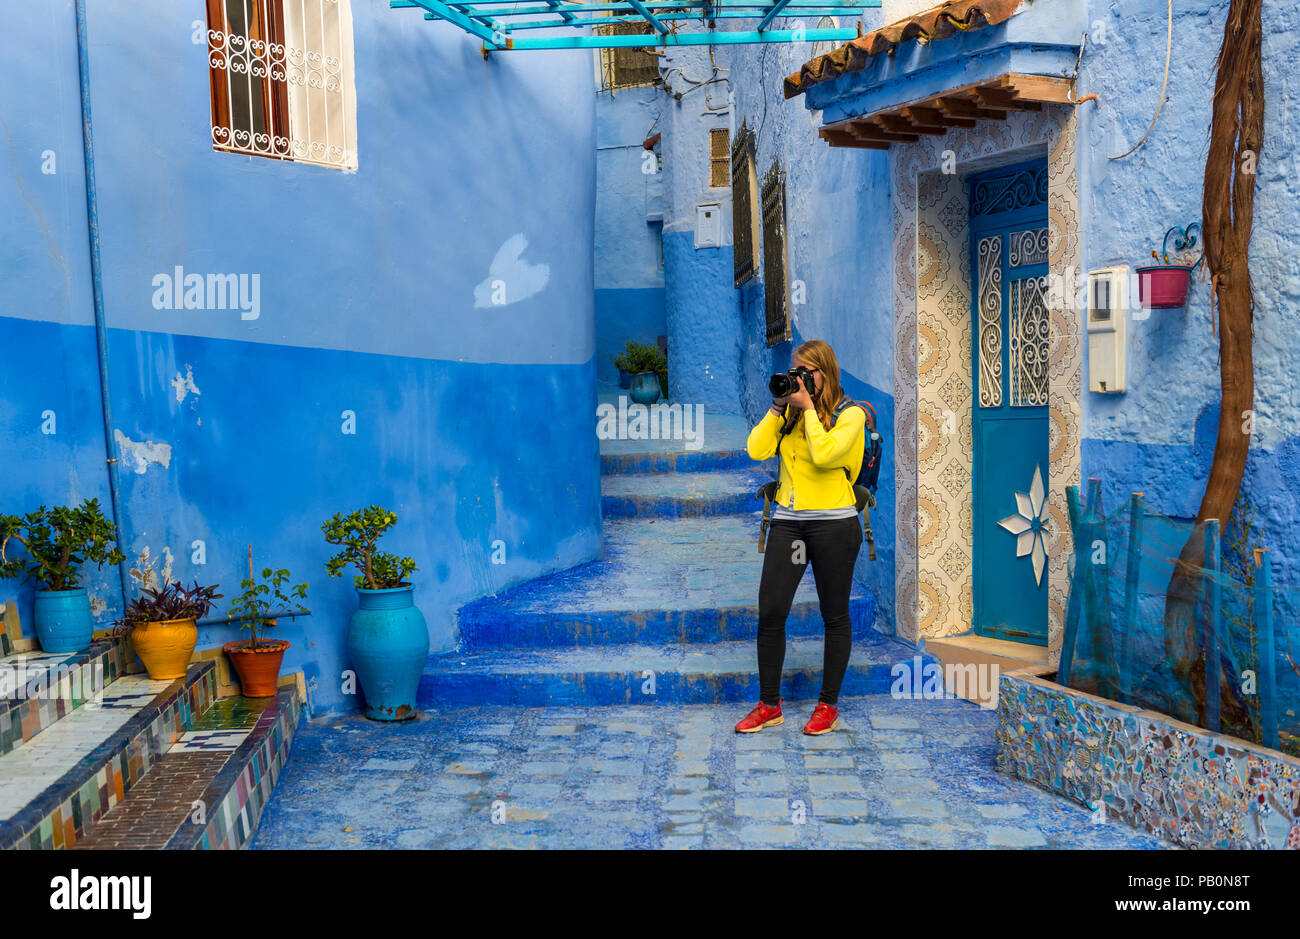 Young woman photographed, Blue house walls, Medina of Chefchaouen, Chaouen, Tangier-Tétouan, Kingdom of Morocco - Stock Image